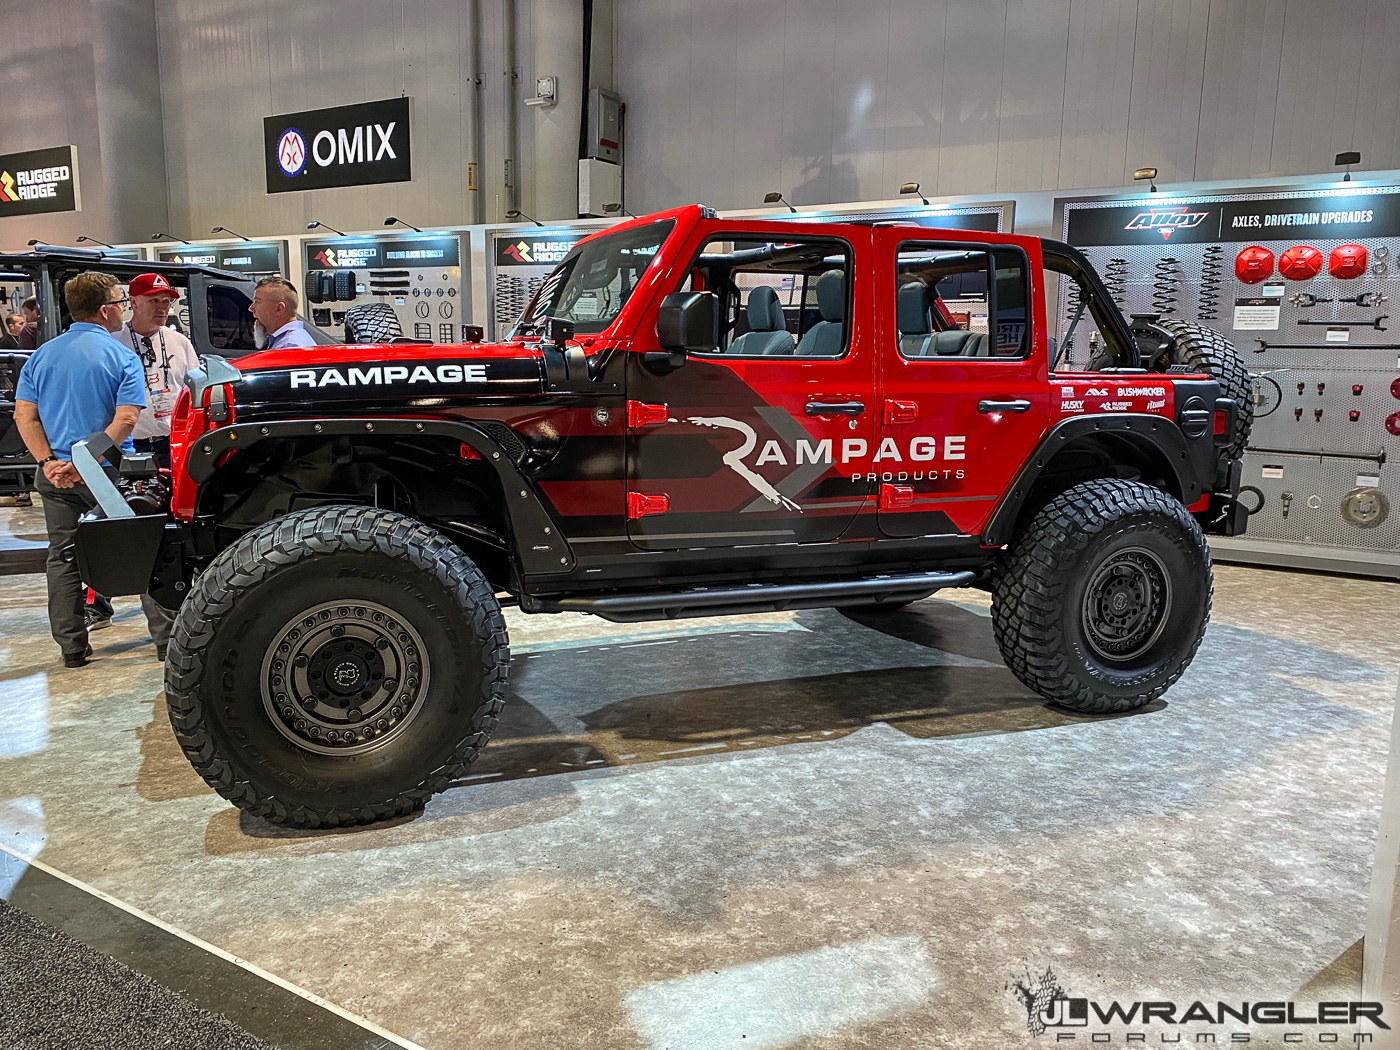 Rampage-JLU-Jeep-Wrangler-SEMA-Build-4.jpg